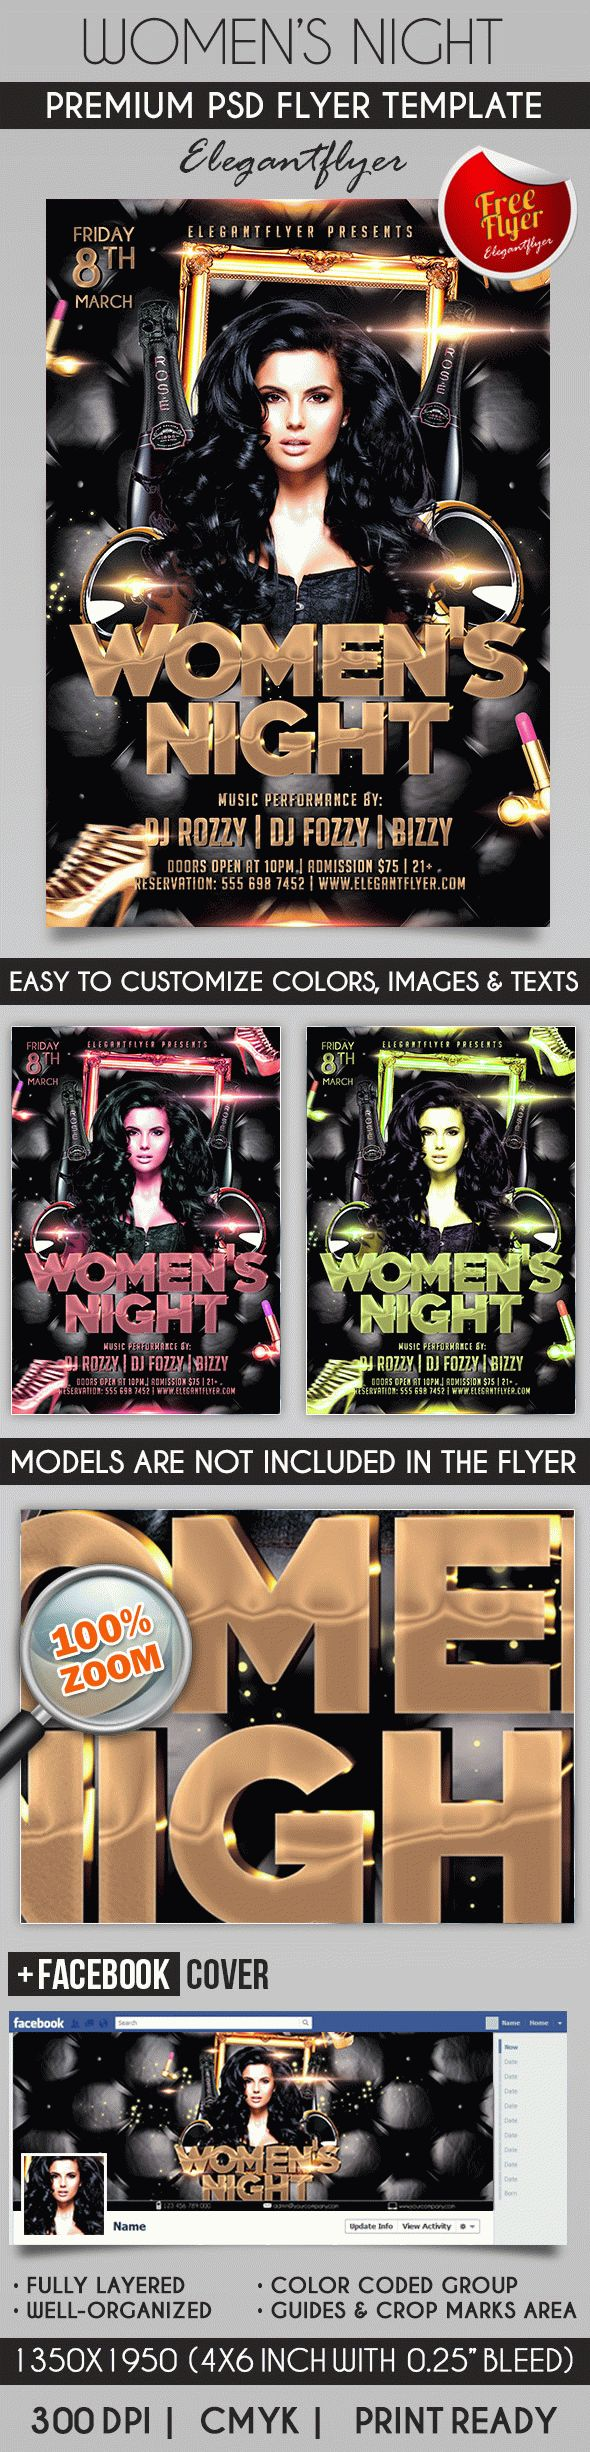 Women's Night – Free Flyer PSD Template + Facebook Cover